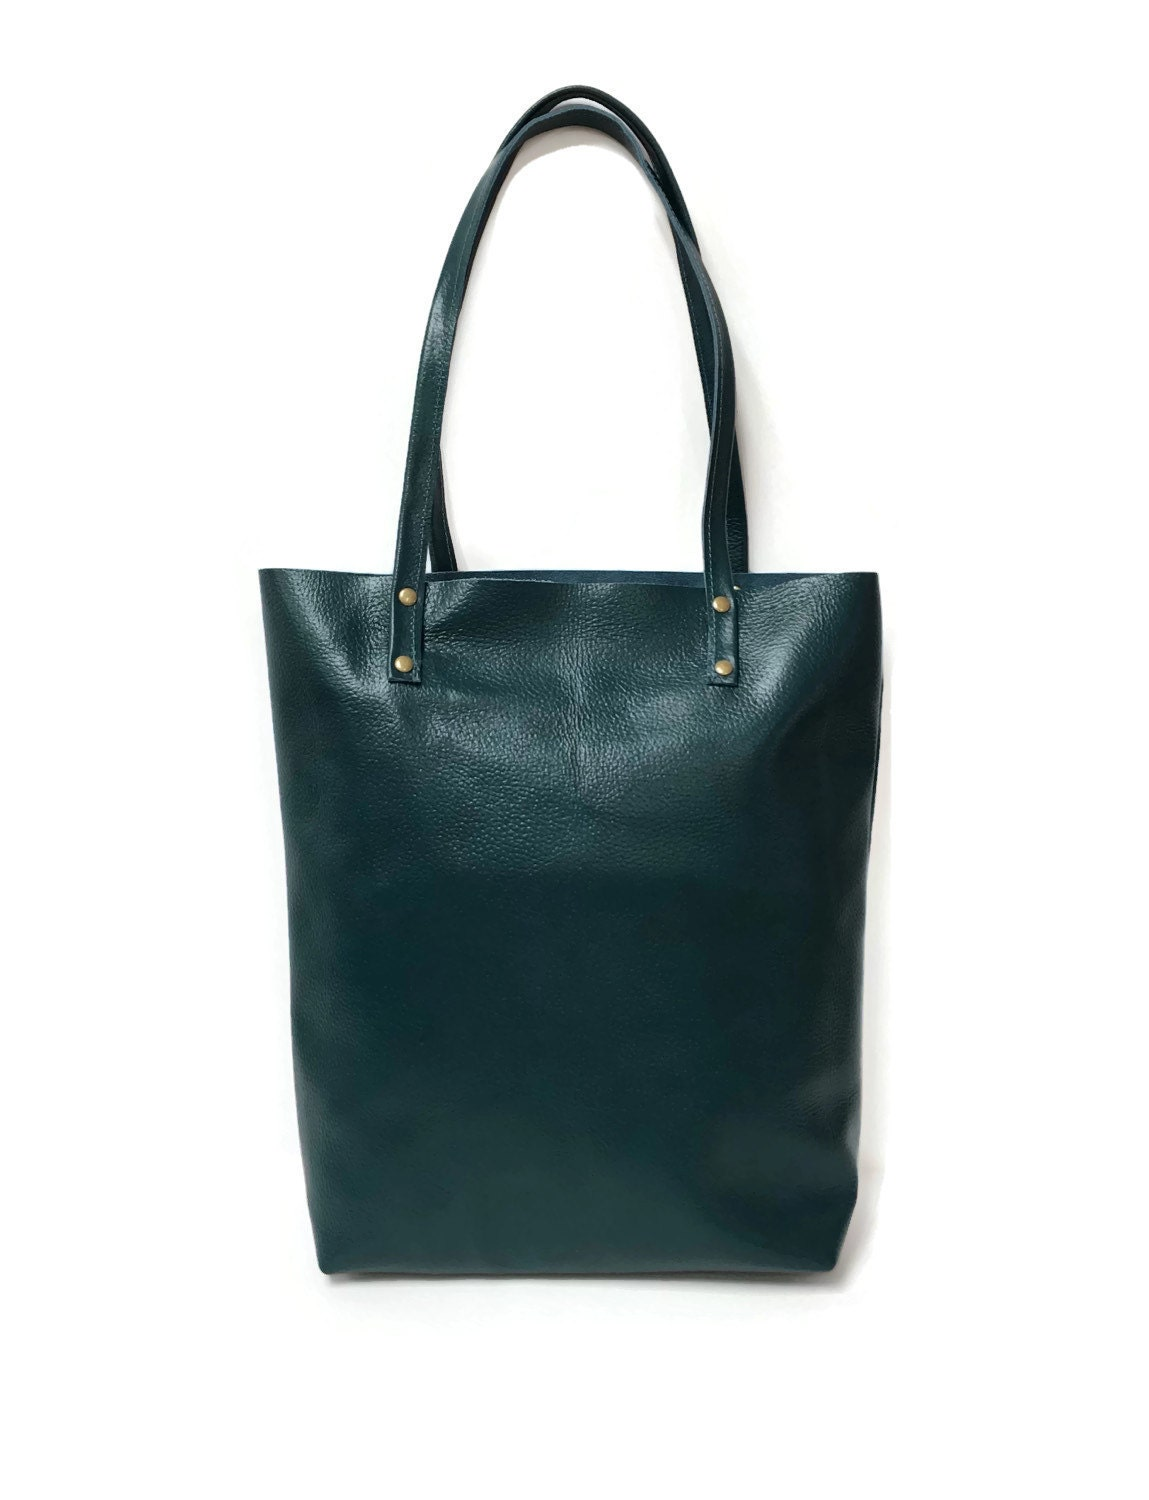 teal leather tote bag simple market tote by